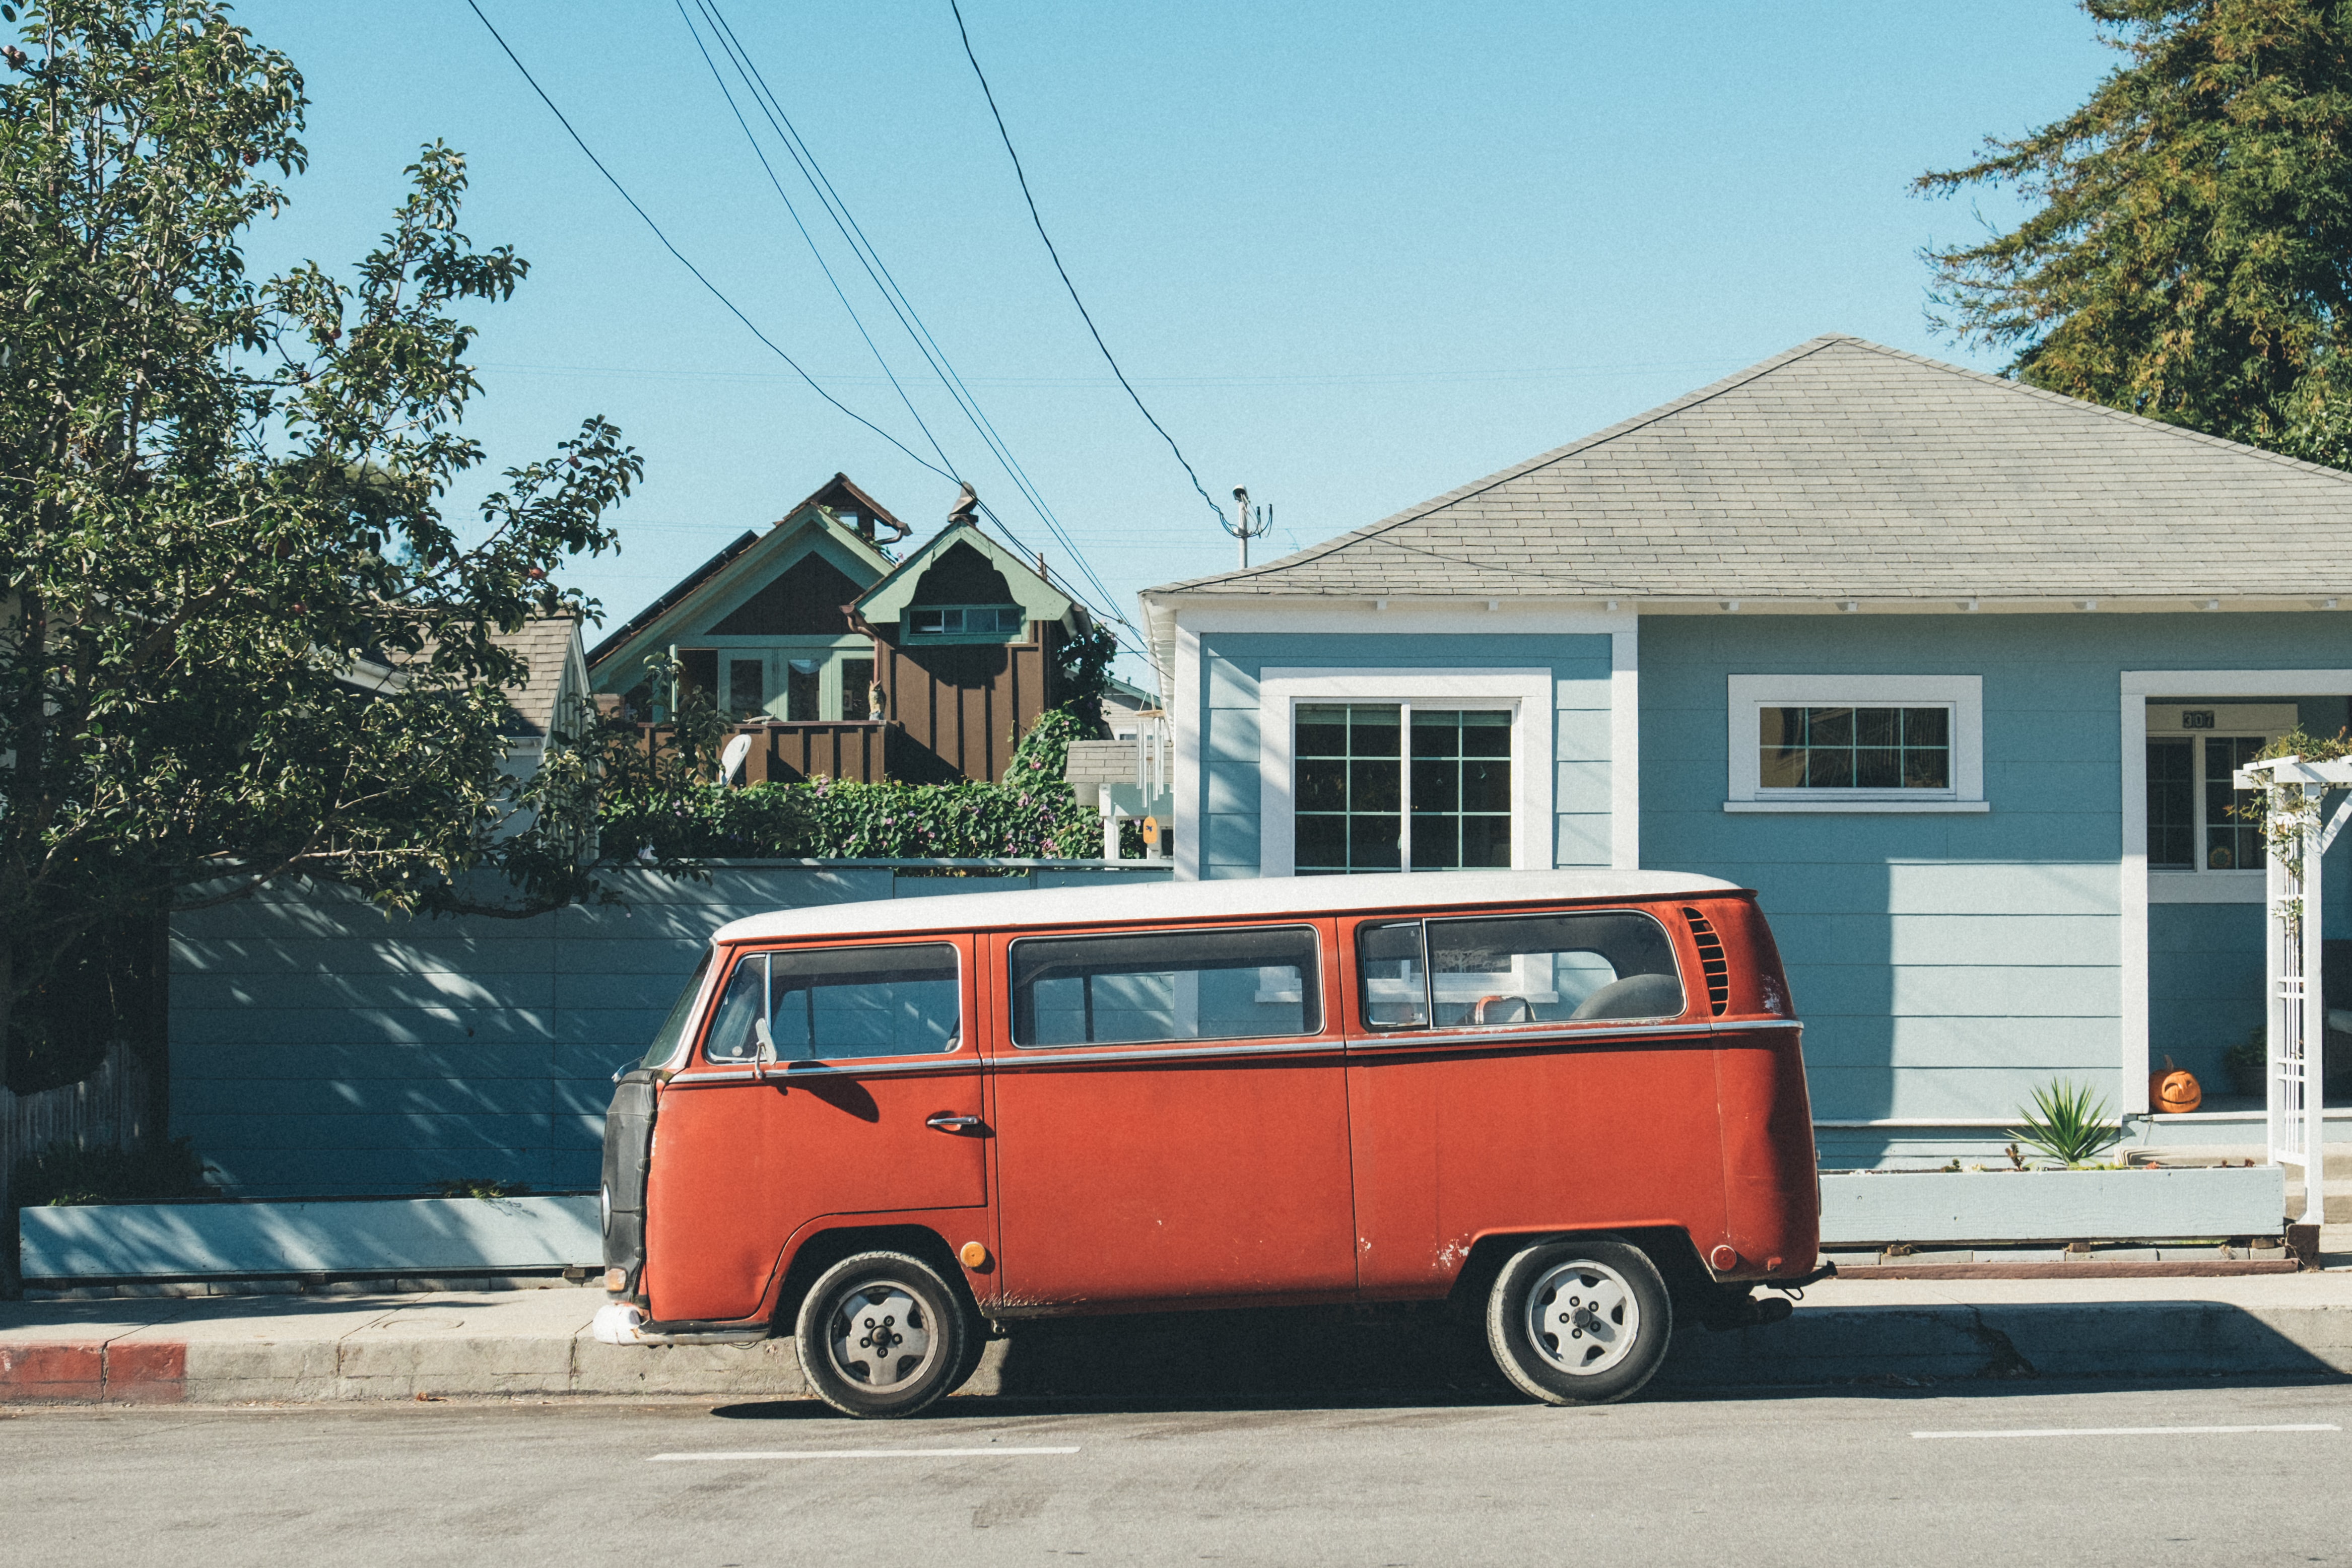 Vintage red Volkswagen van parked on the street in front of a light blue house